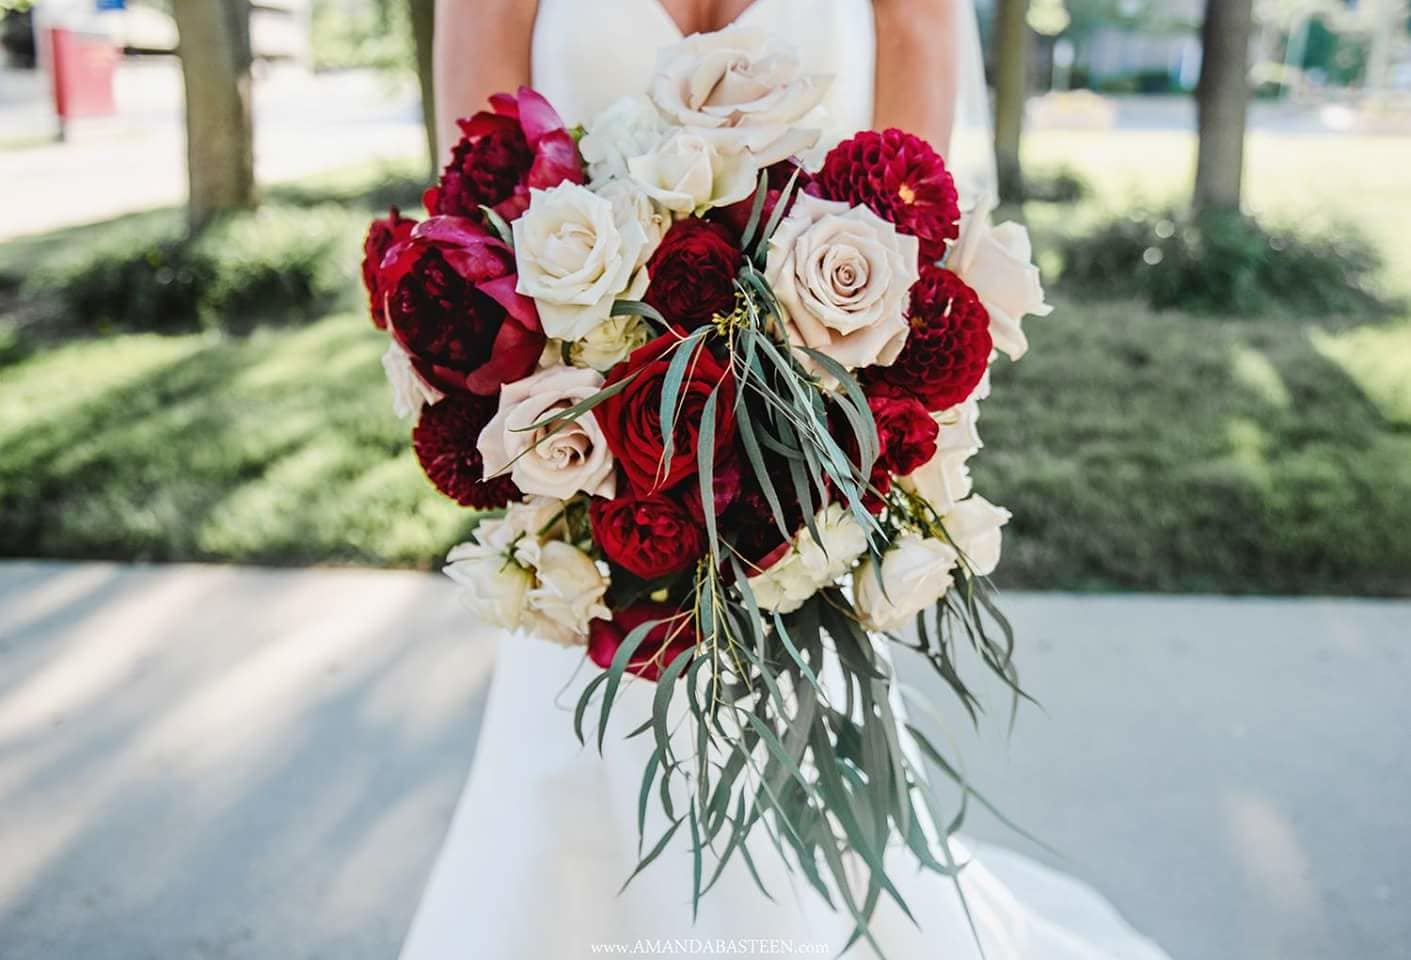 Plaza Florist and Gifts is your go-to florist for weddings & special occasions.